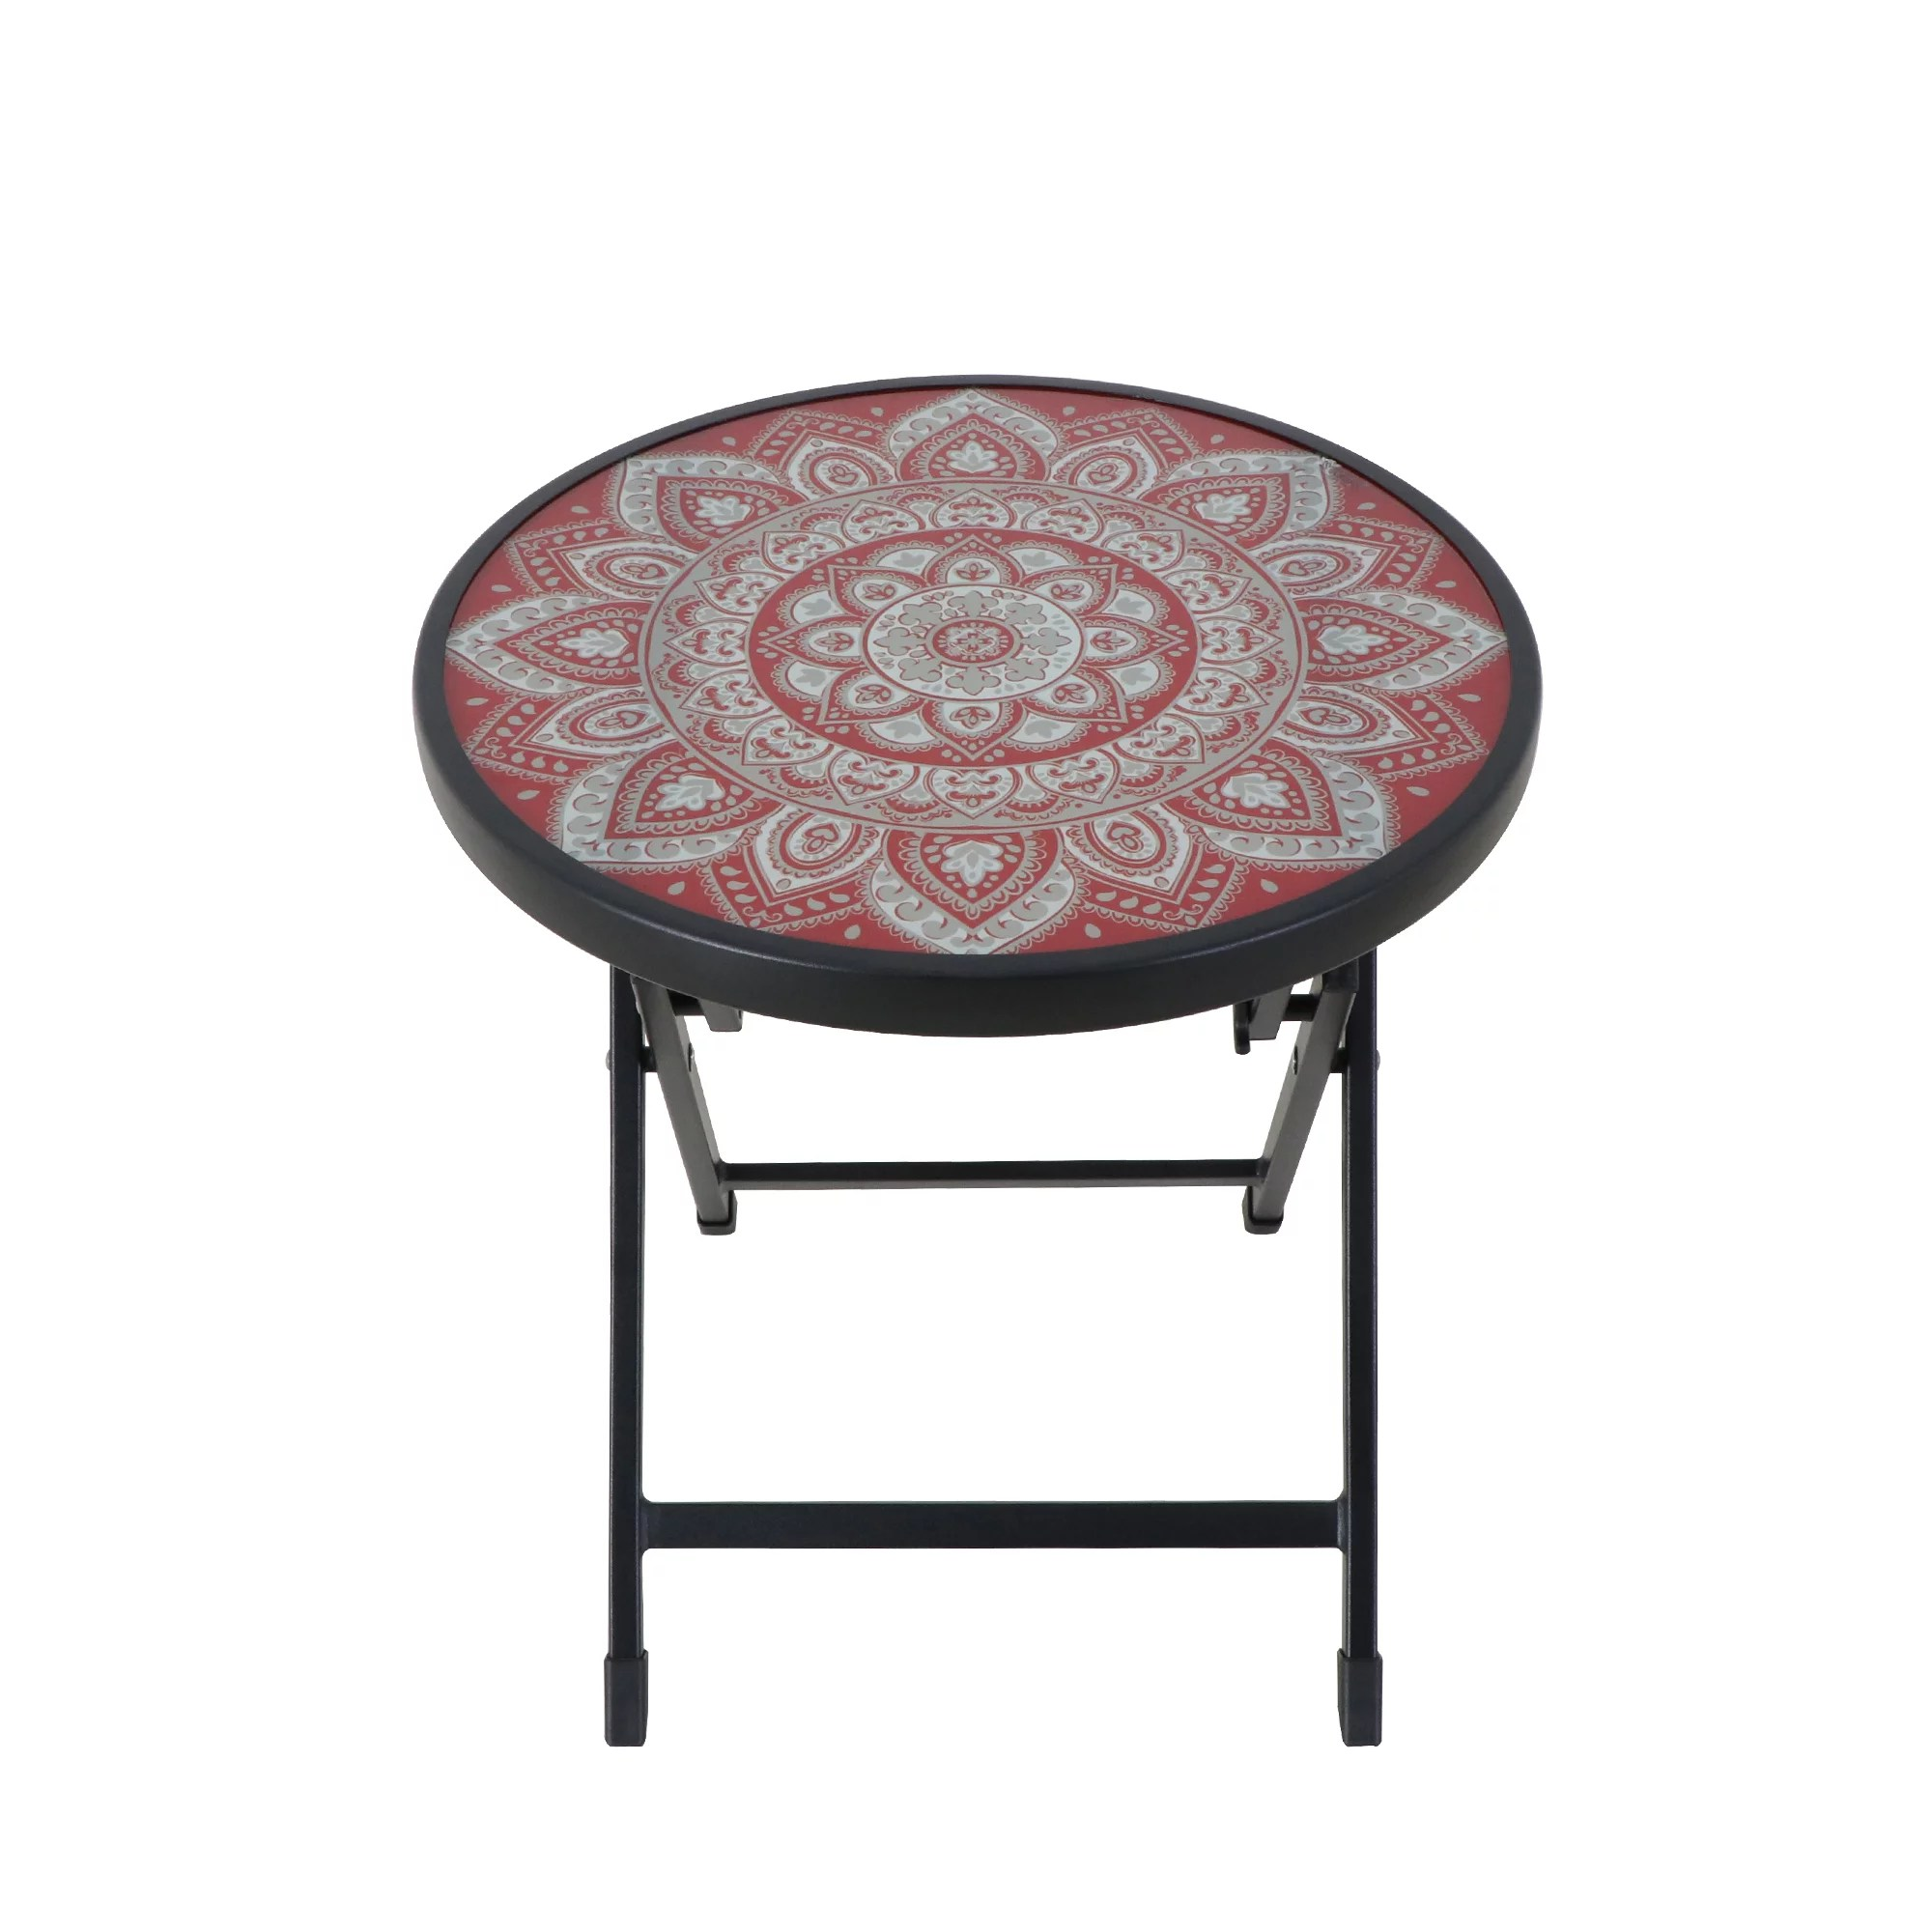 mainstays outdoor patio folding side table glass top red black